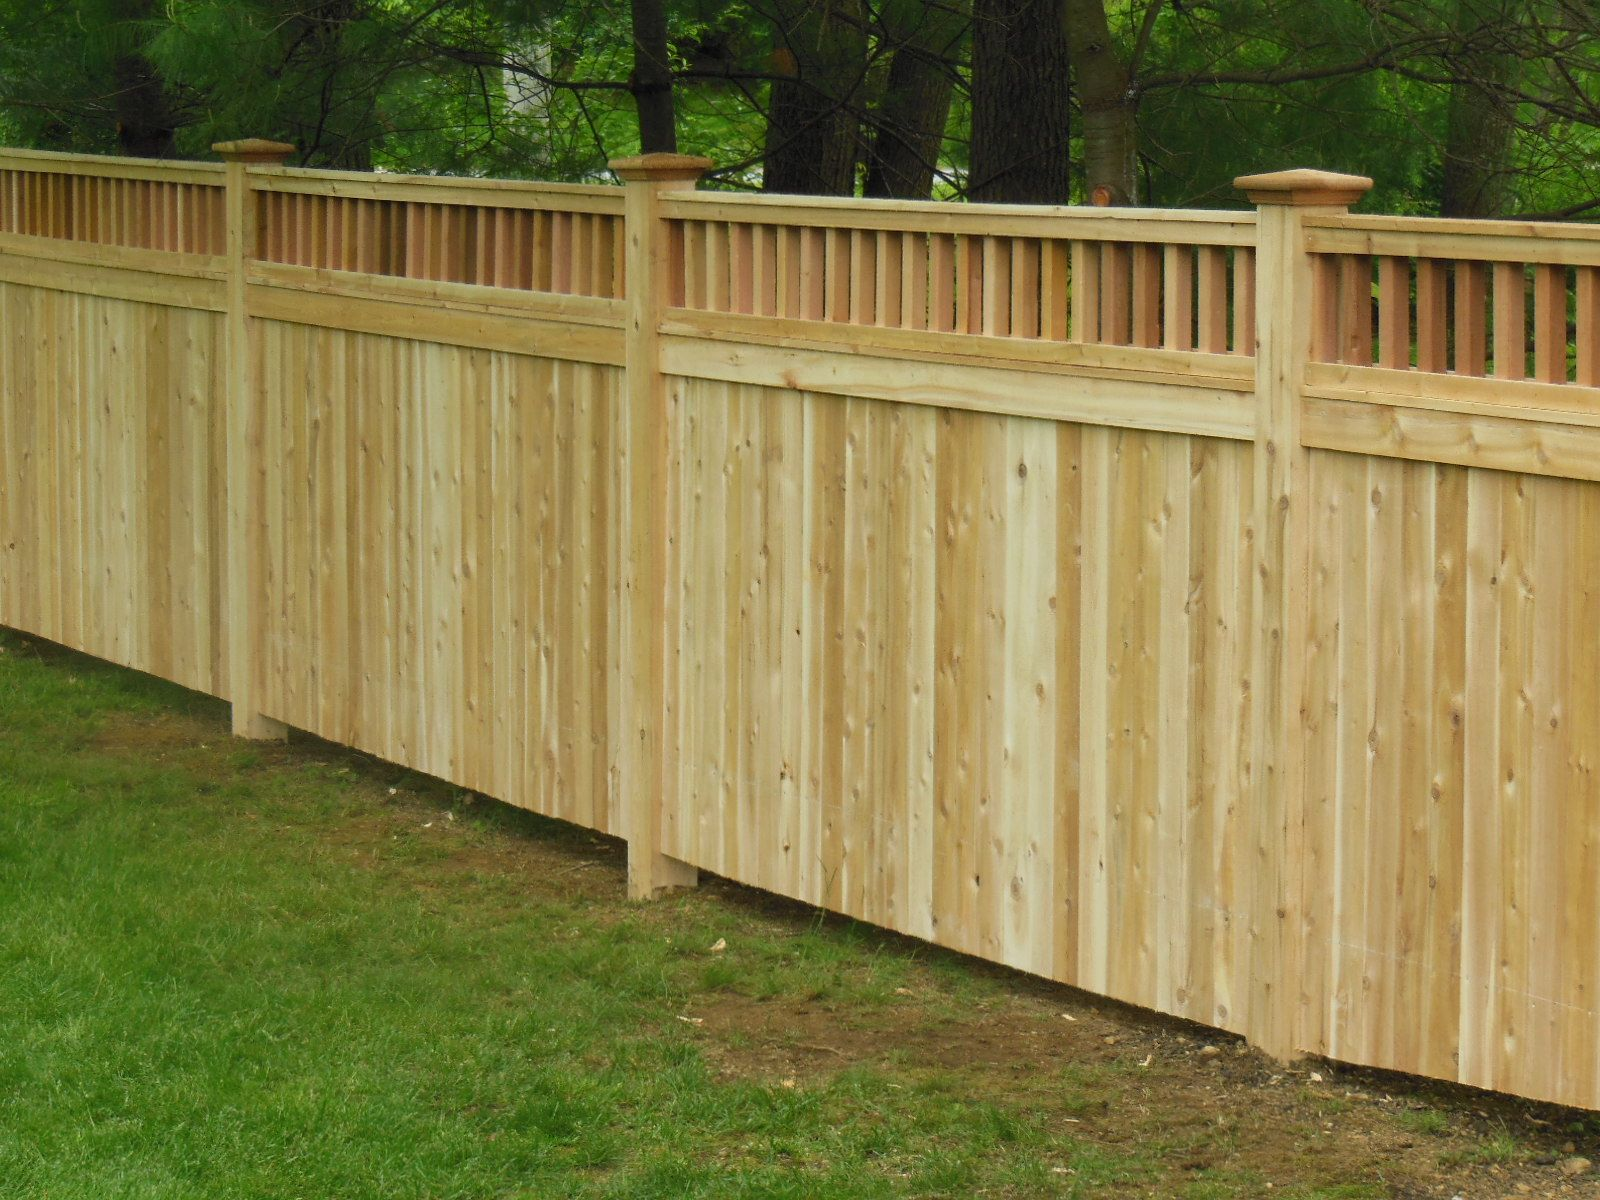 Cottage Privacy Fence Google Search Fence Design Privacy Fence Designs Wood Fence Design